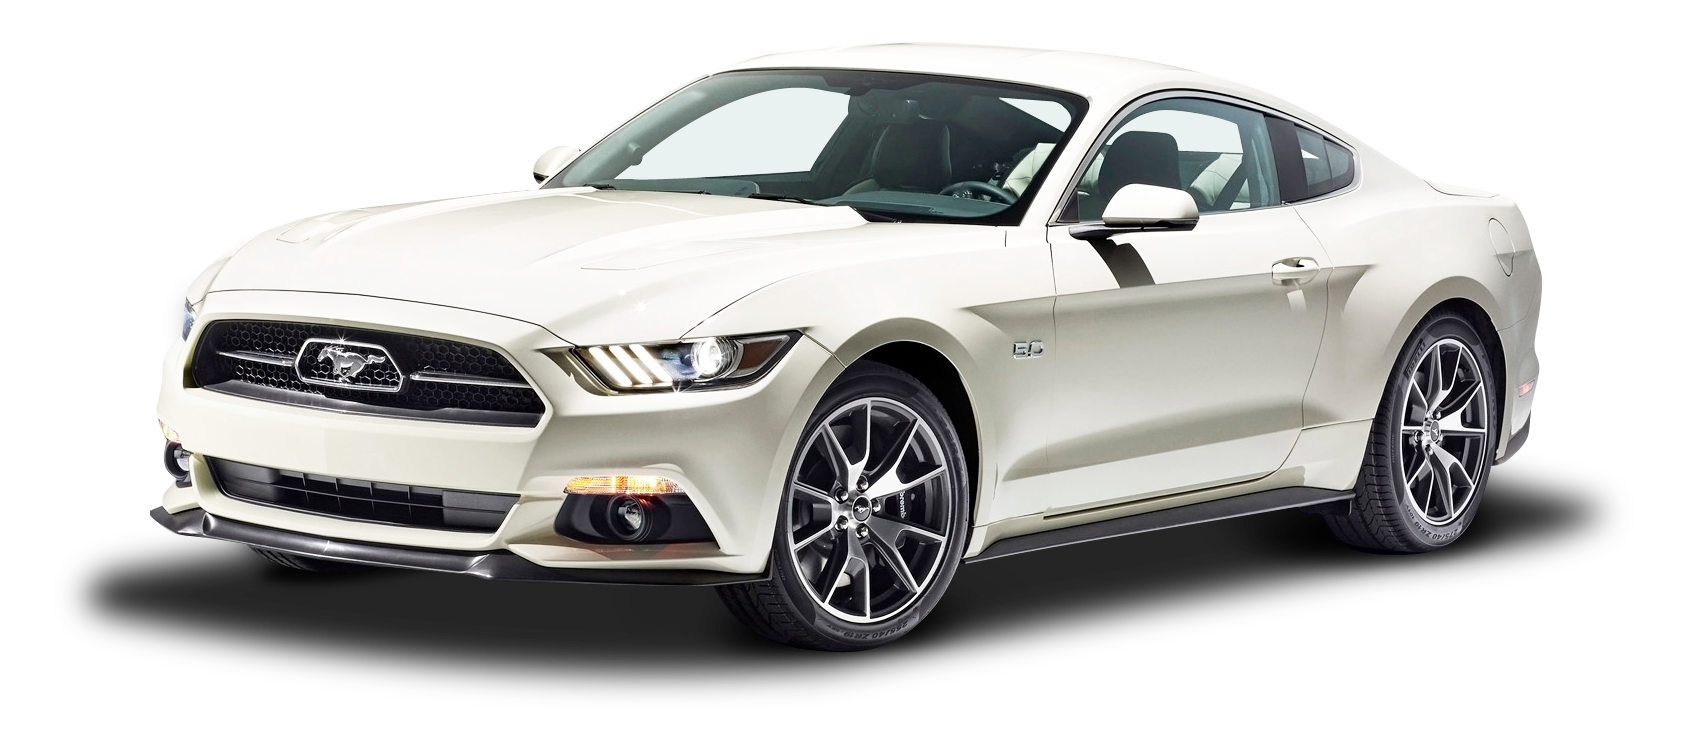 Download White Ford Mustang Gt Fastback Car Png Image For Free